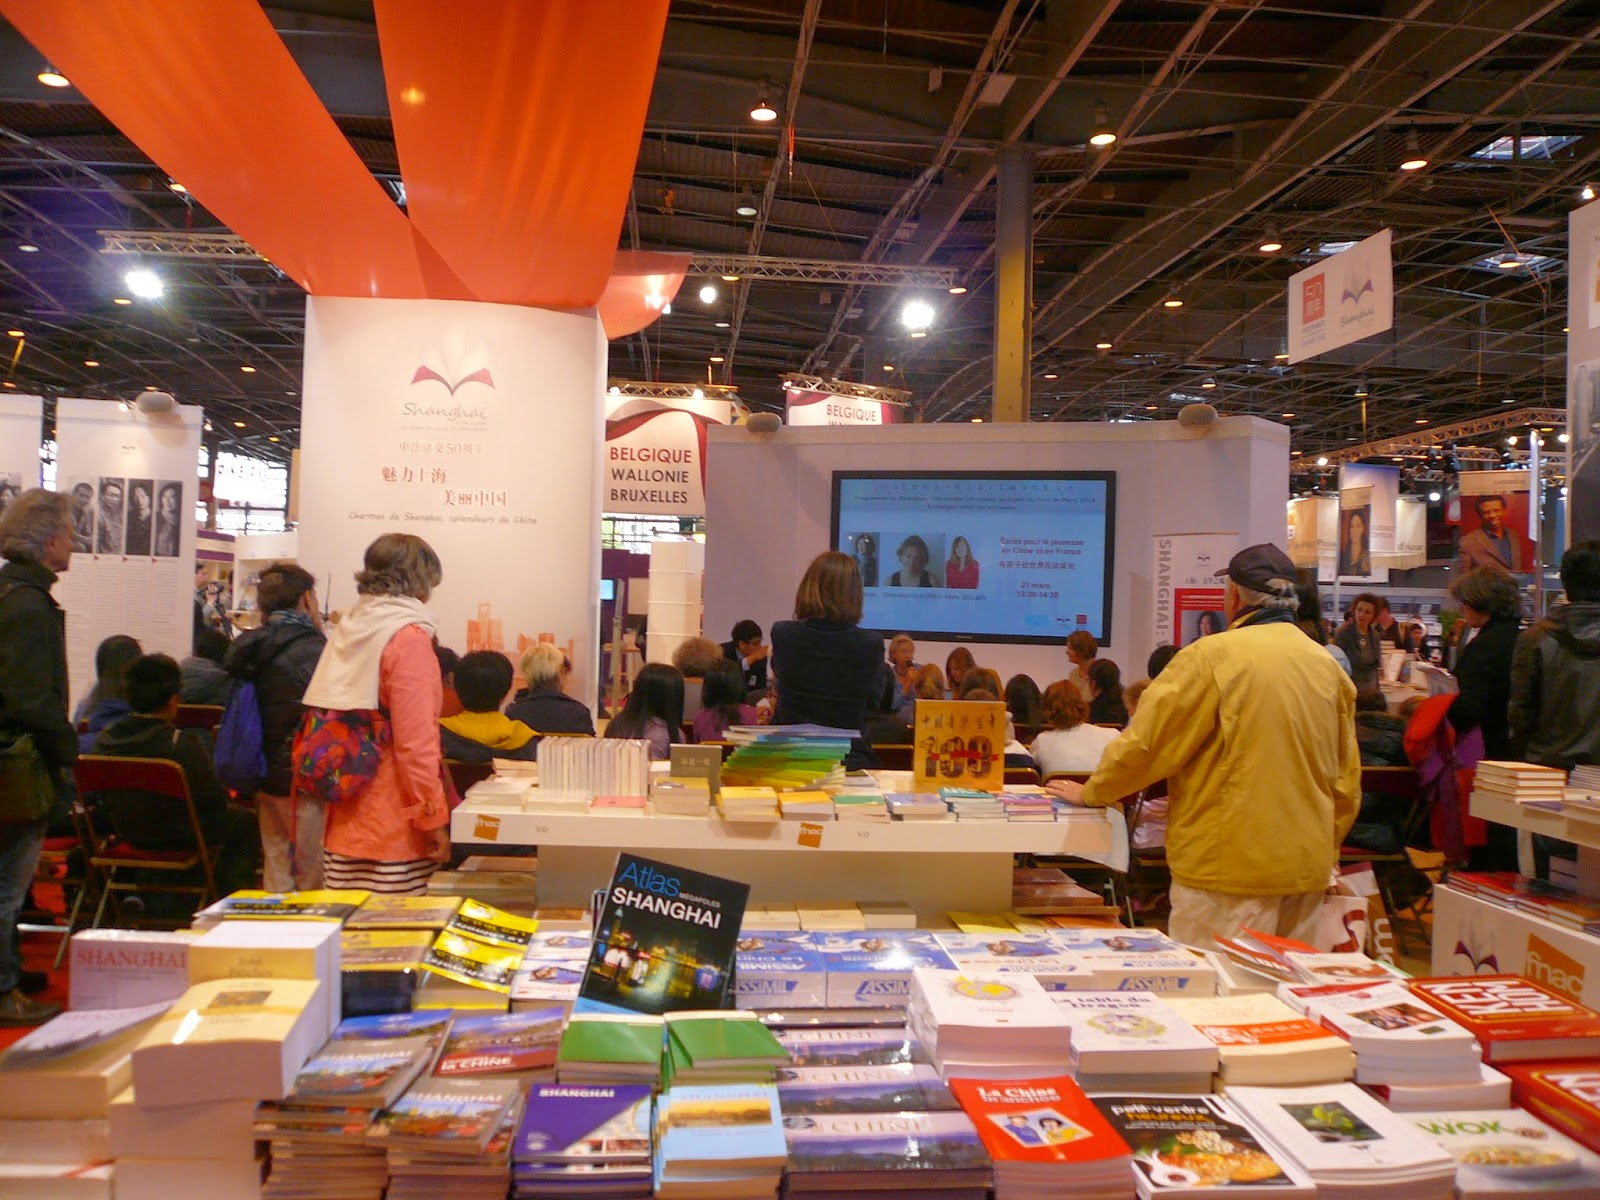 Salon Du Livre Paris Positive Eating Positive Living Salon Du Livre Paris 2014